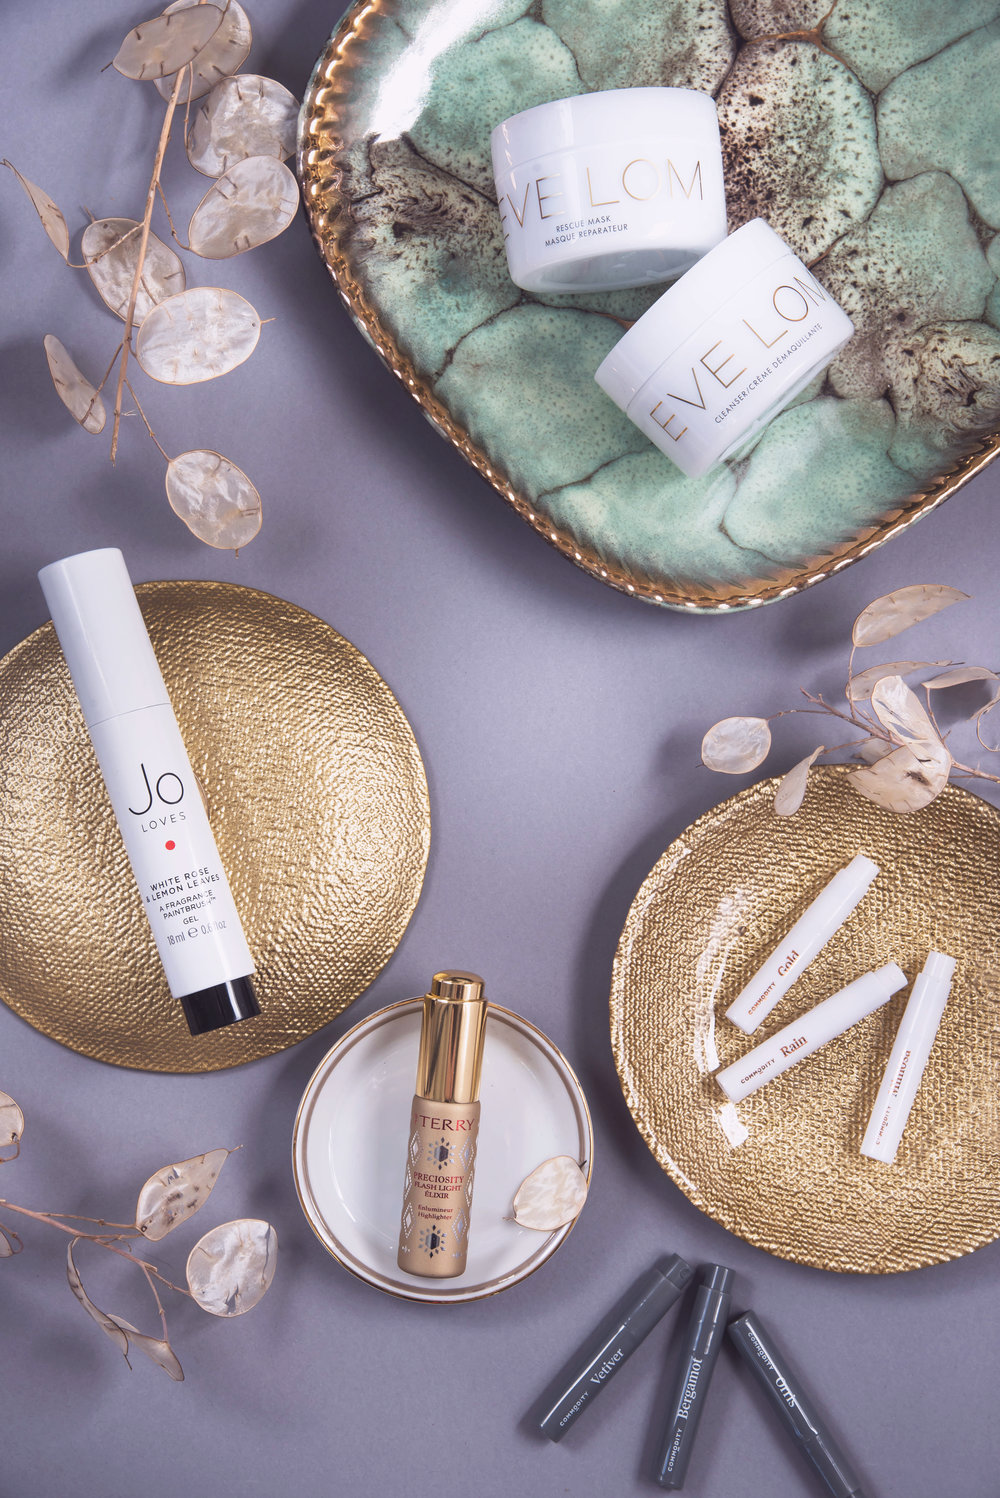 For the Sophisticated Beauty Lover - Give the Ultimate Gift of Pampering